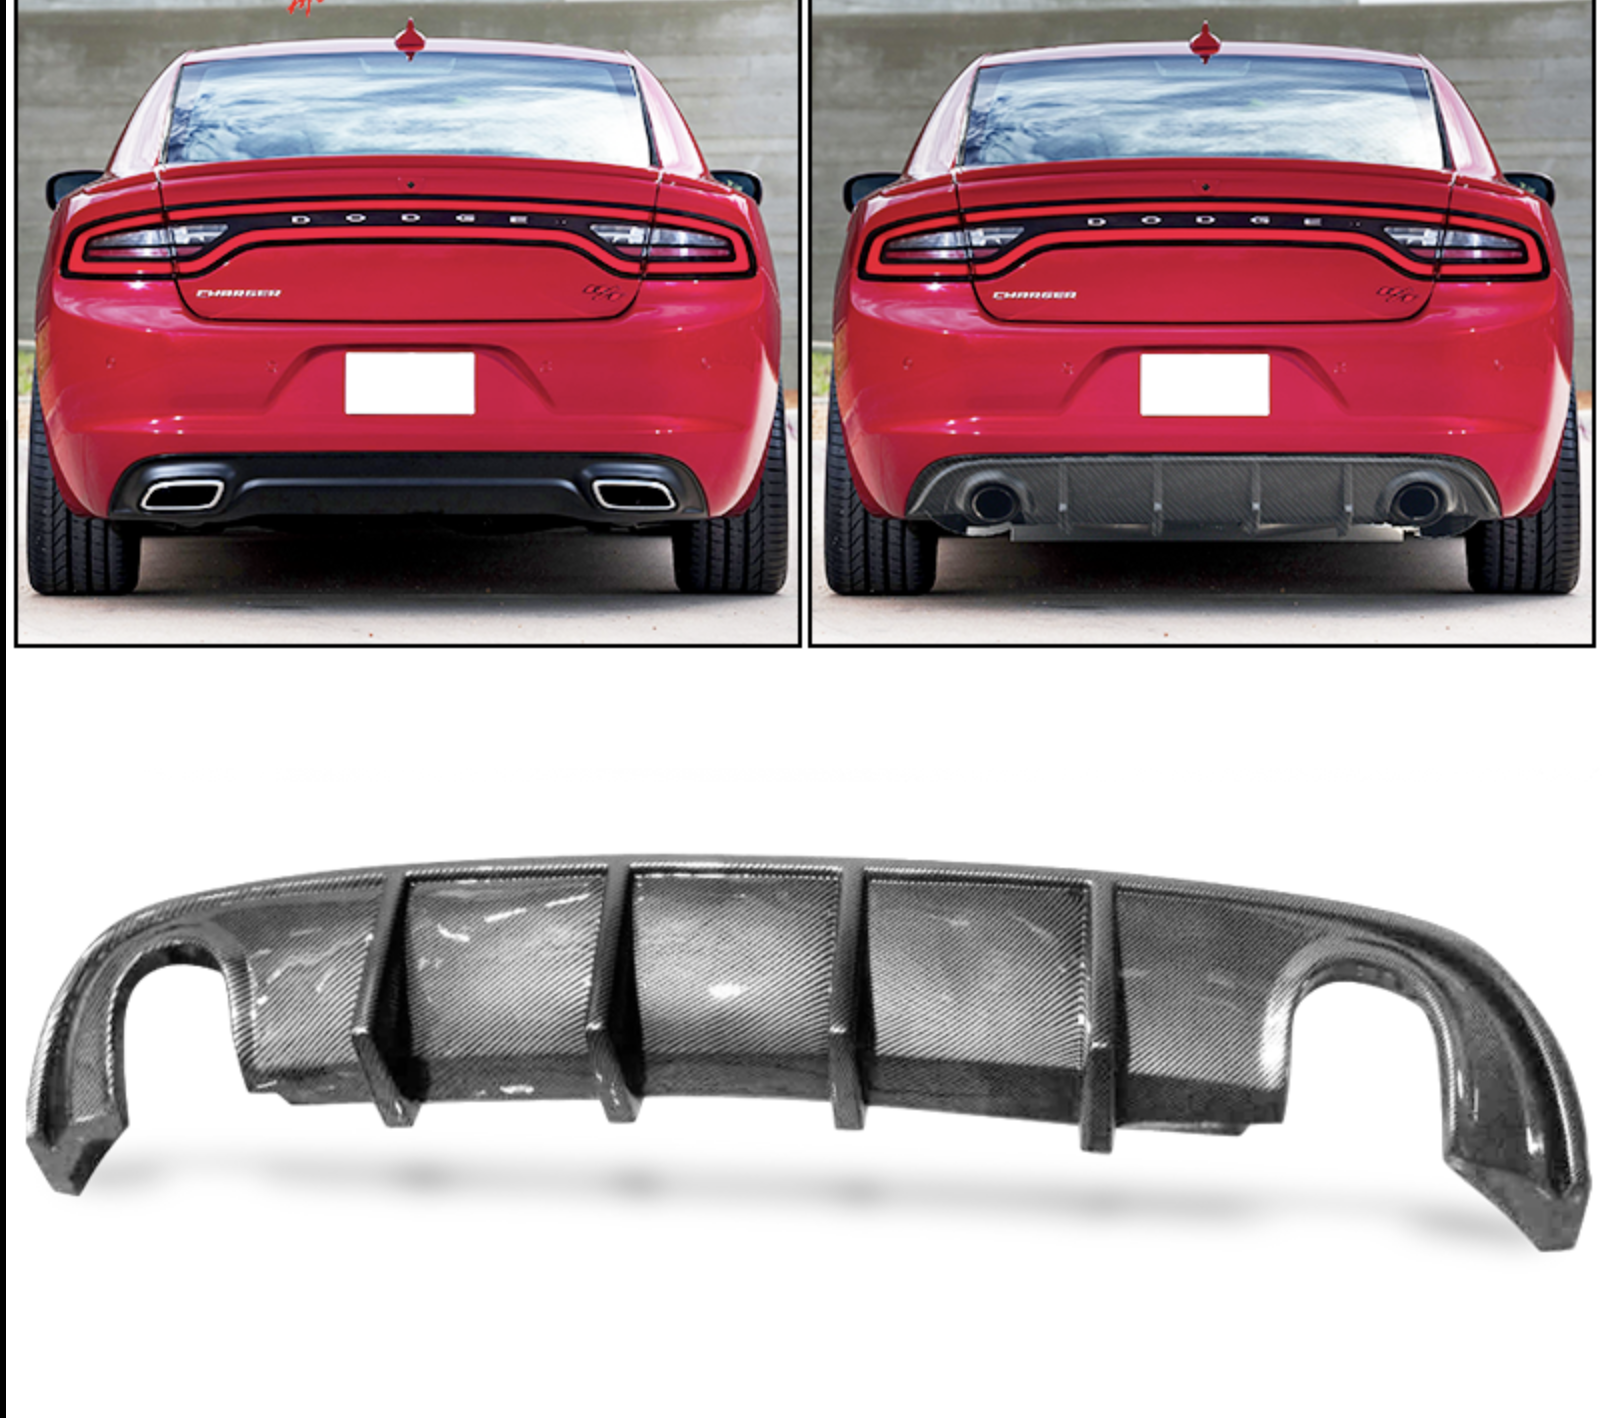 Single Tip Ikon Diffuser 2015 2021 Dodge Charger Rt Unpainted Carbon Fiber Next Gen Speed